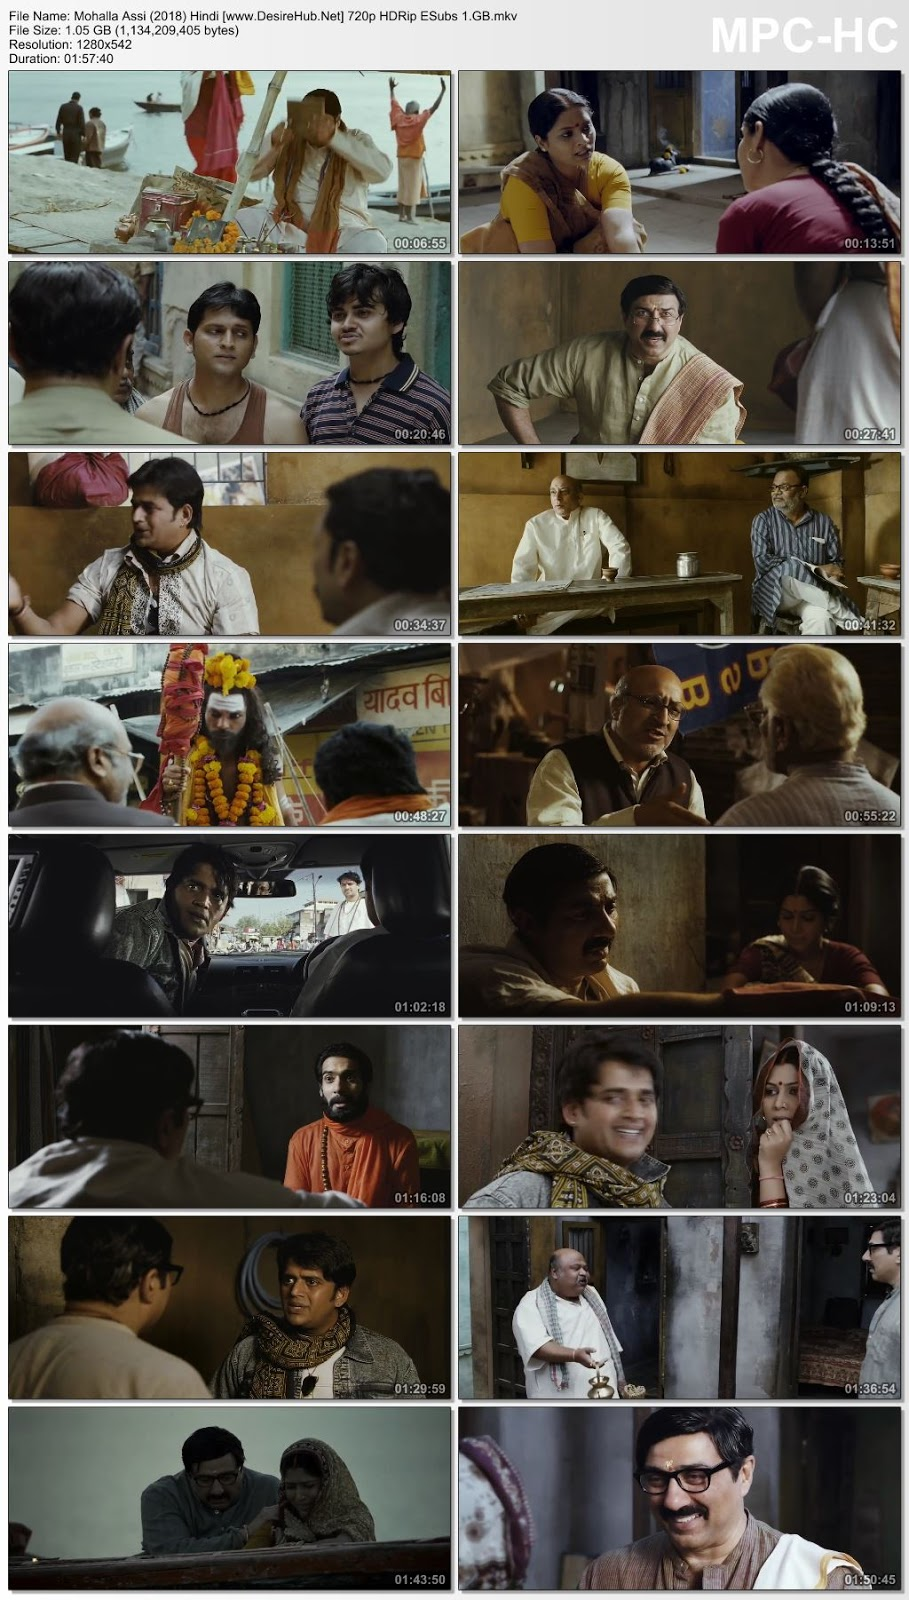 Mohalla Assi (2018) Hindi 480p WEB-DL 300MB Desirehub